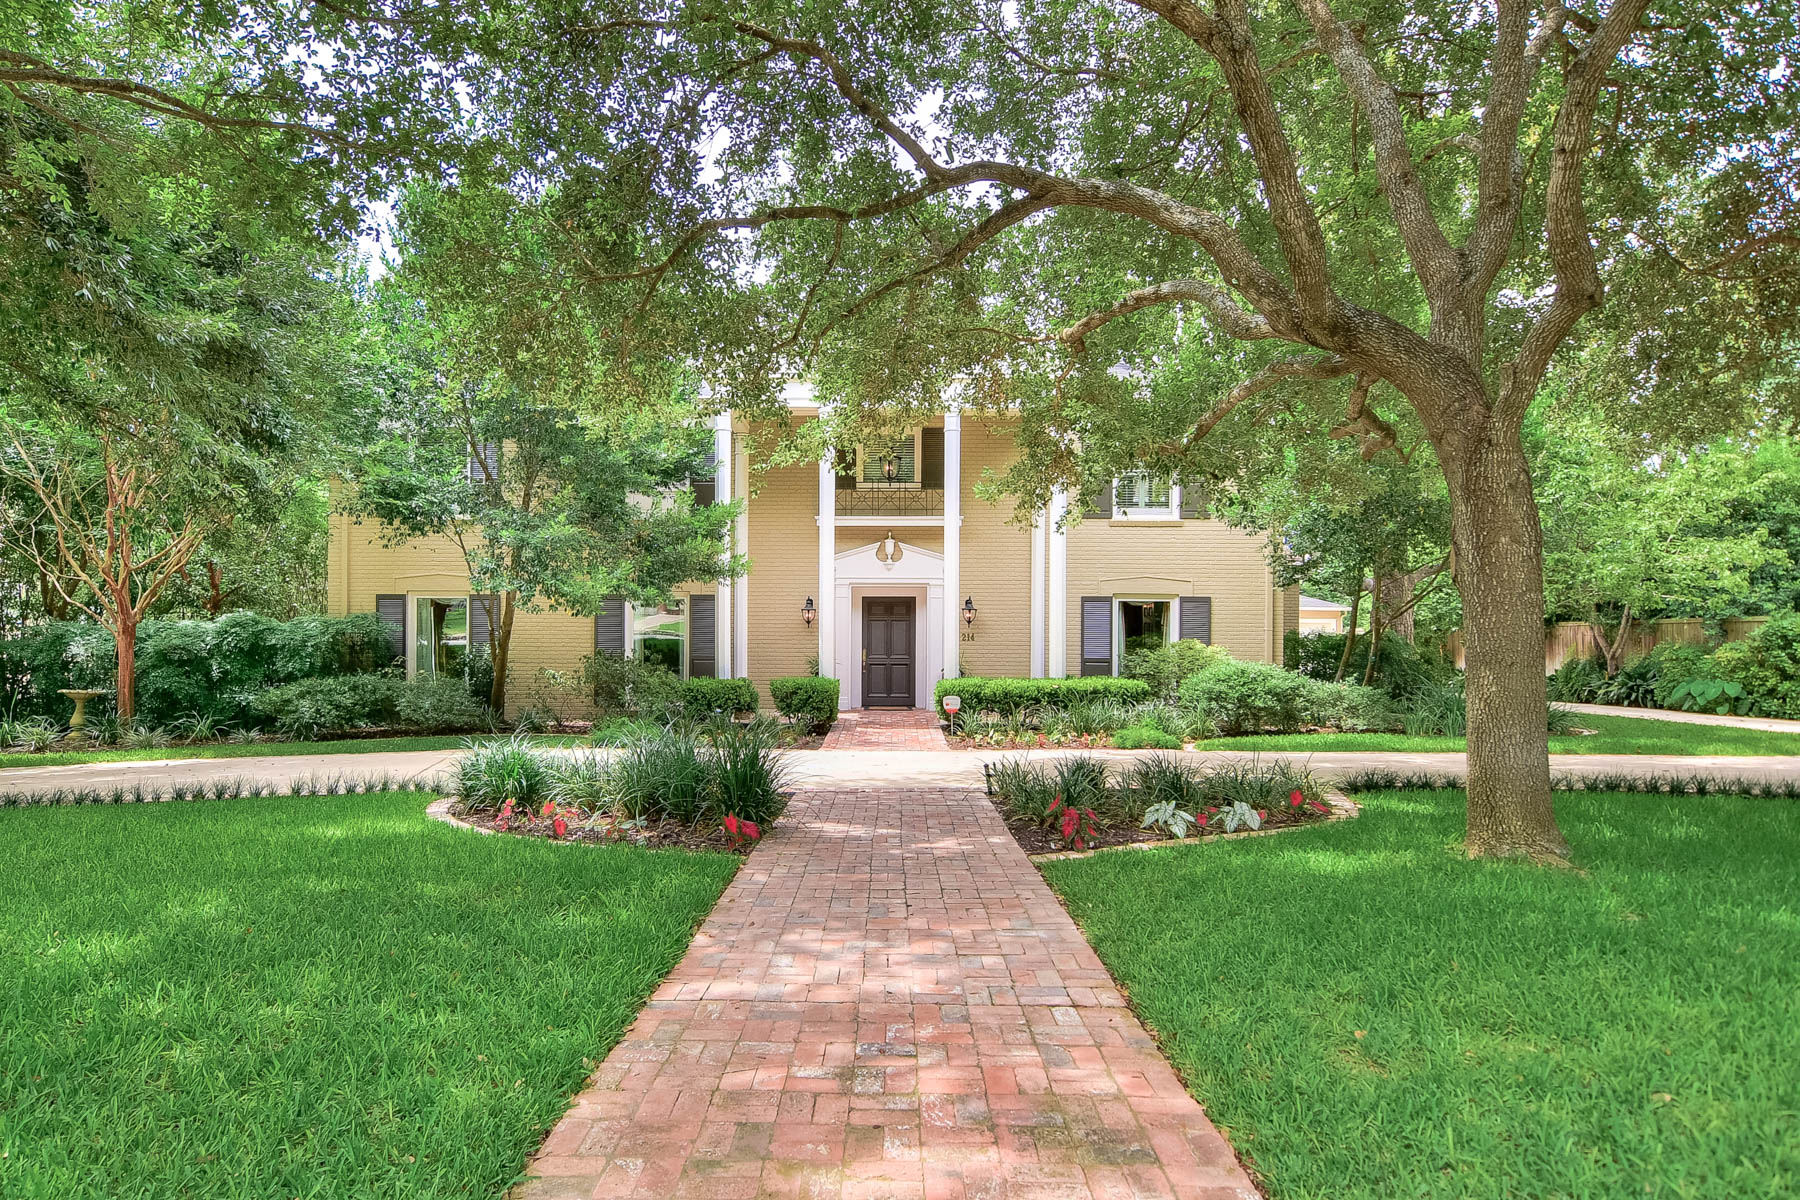 Single Family Home for Sale at Magnificent Home in the Heart of Olmos Park 214 E Mandalay Dr, San Antonio, Texas, 78212 United States